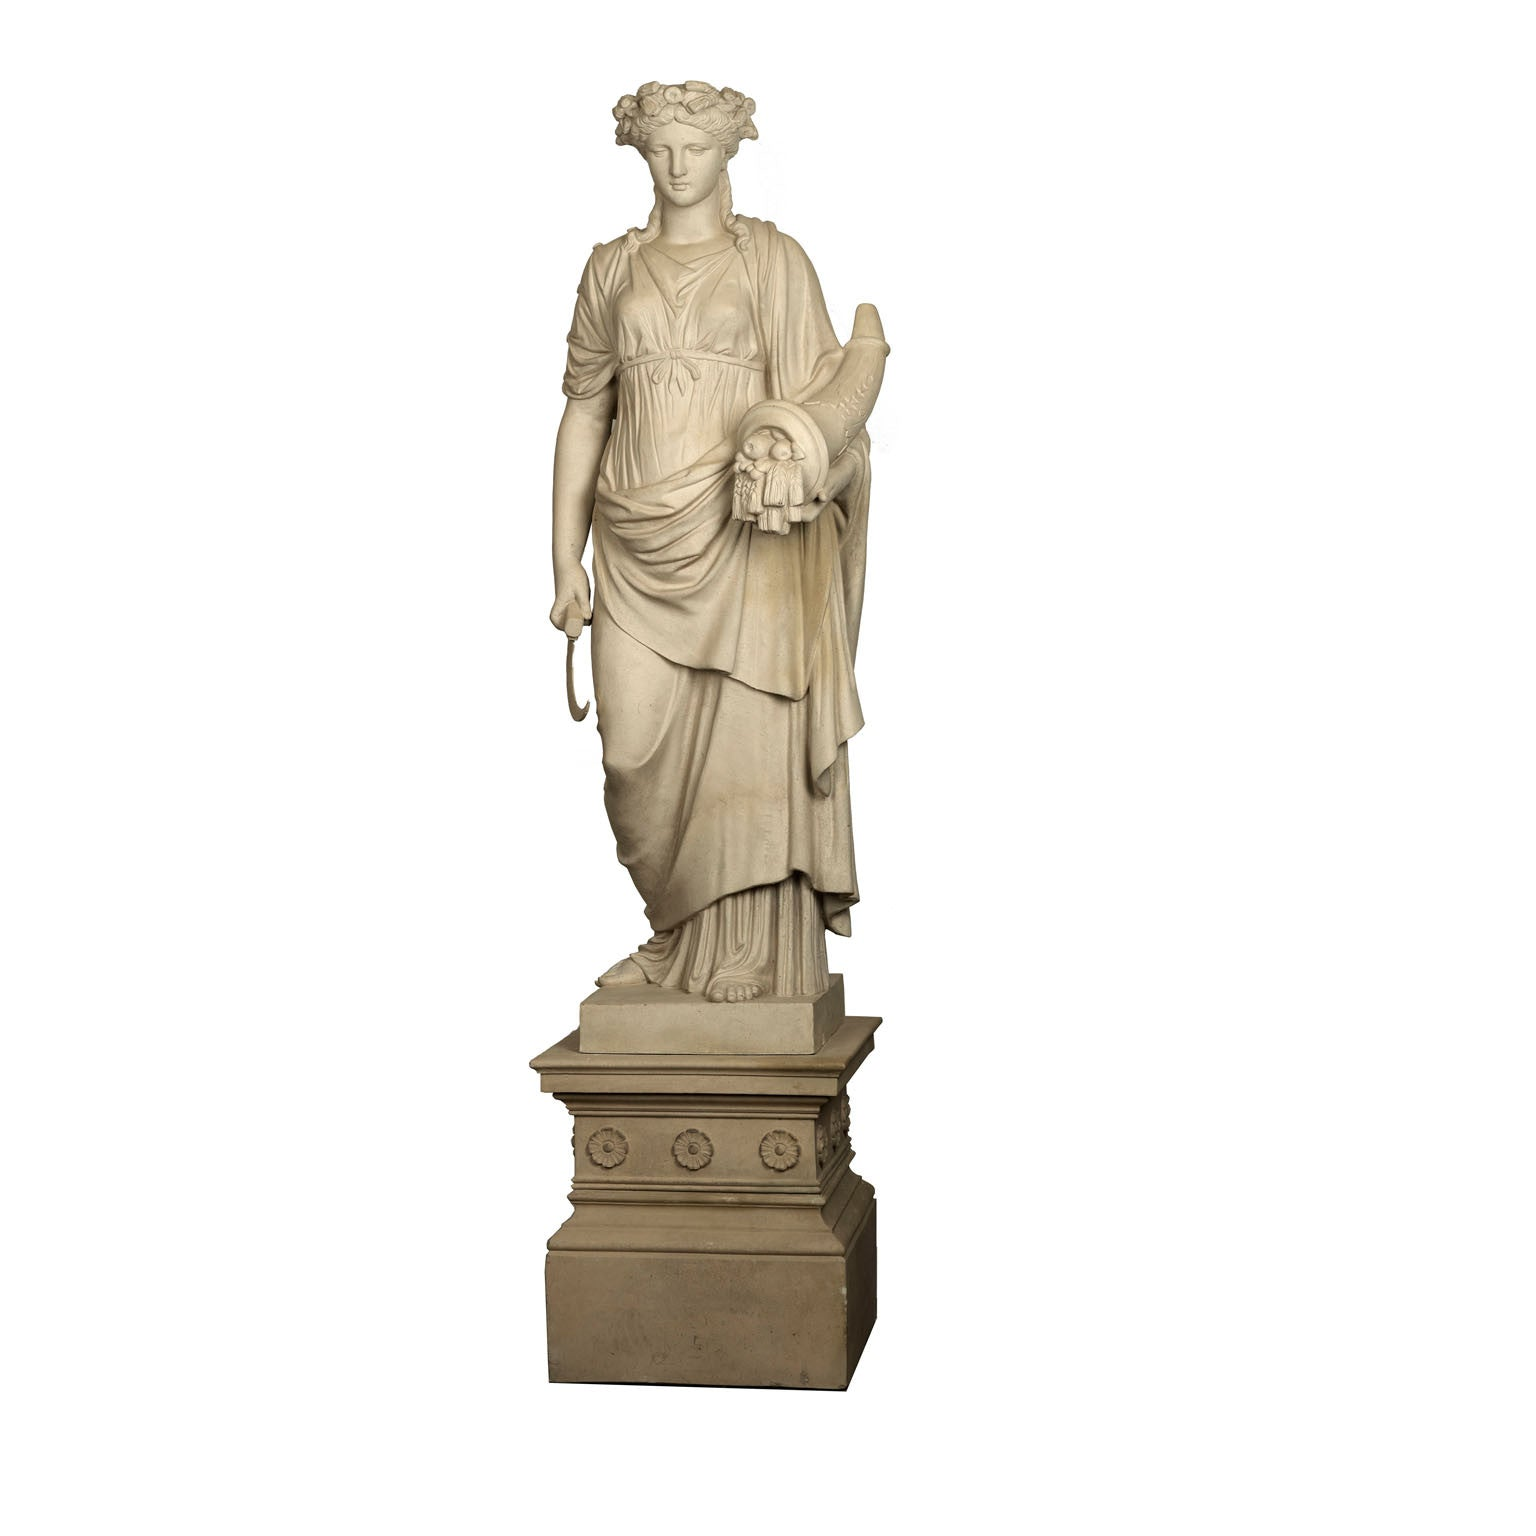 Charlottenburg factory Terracotta statue by E March Sohne